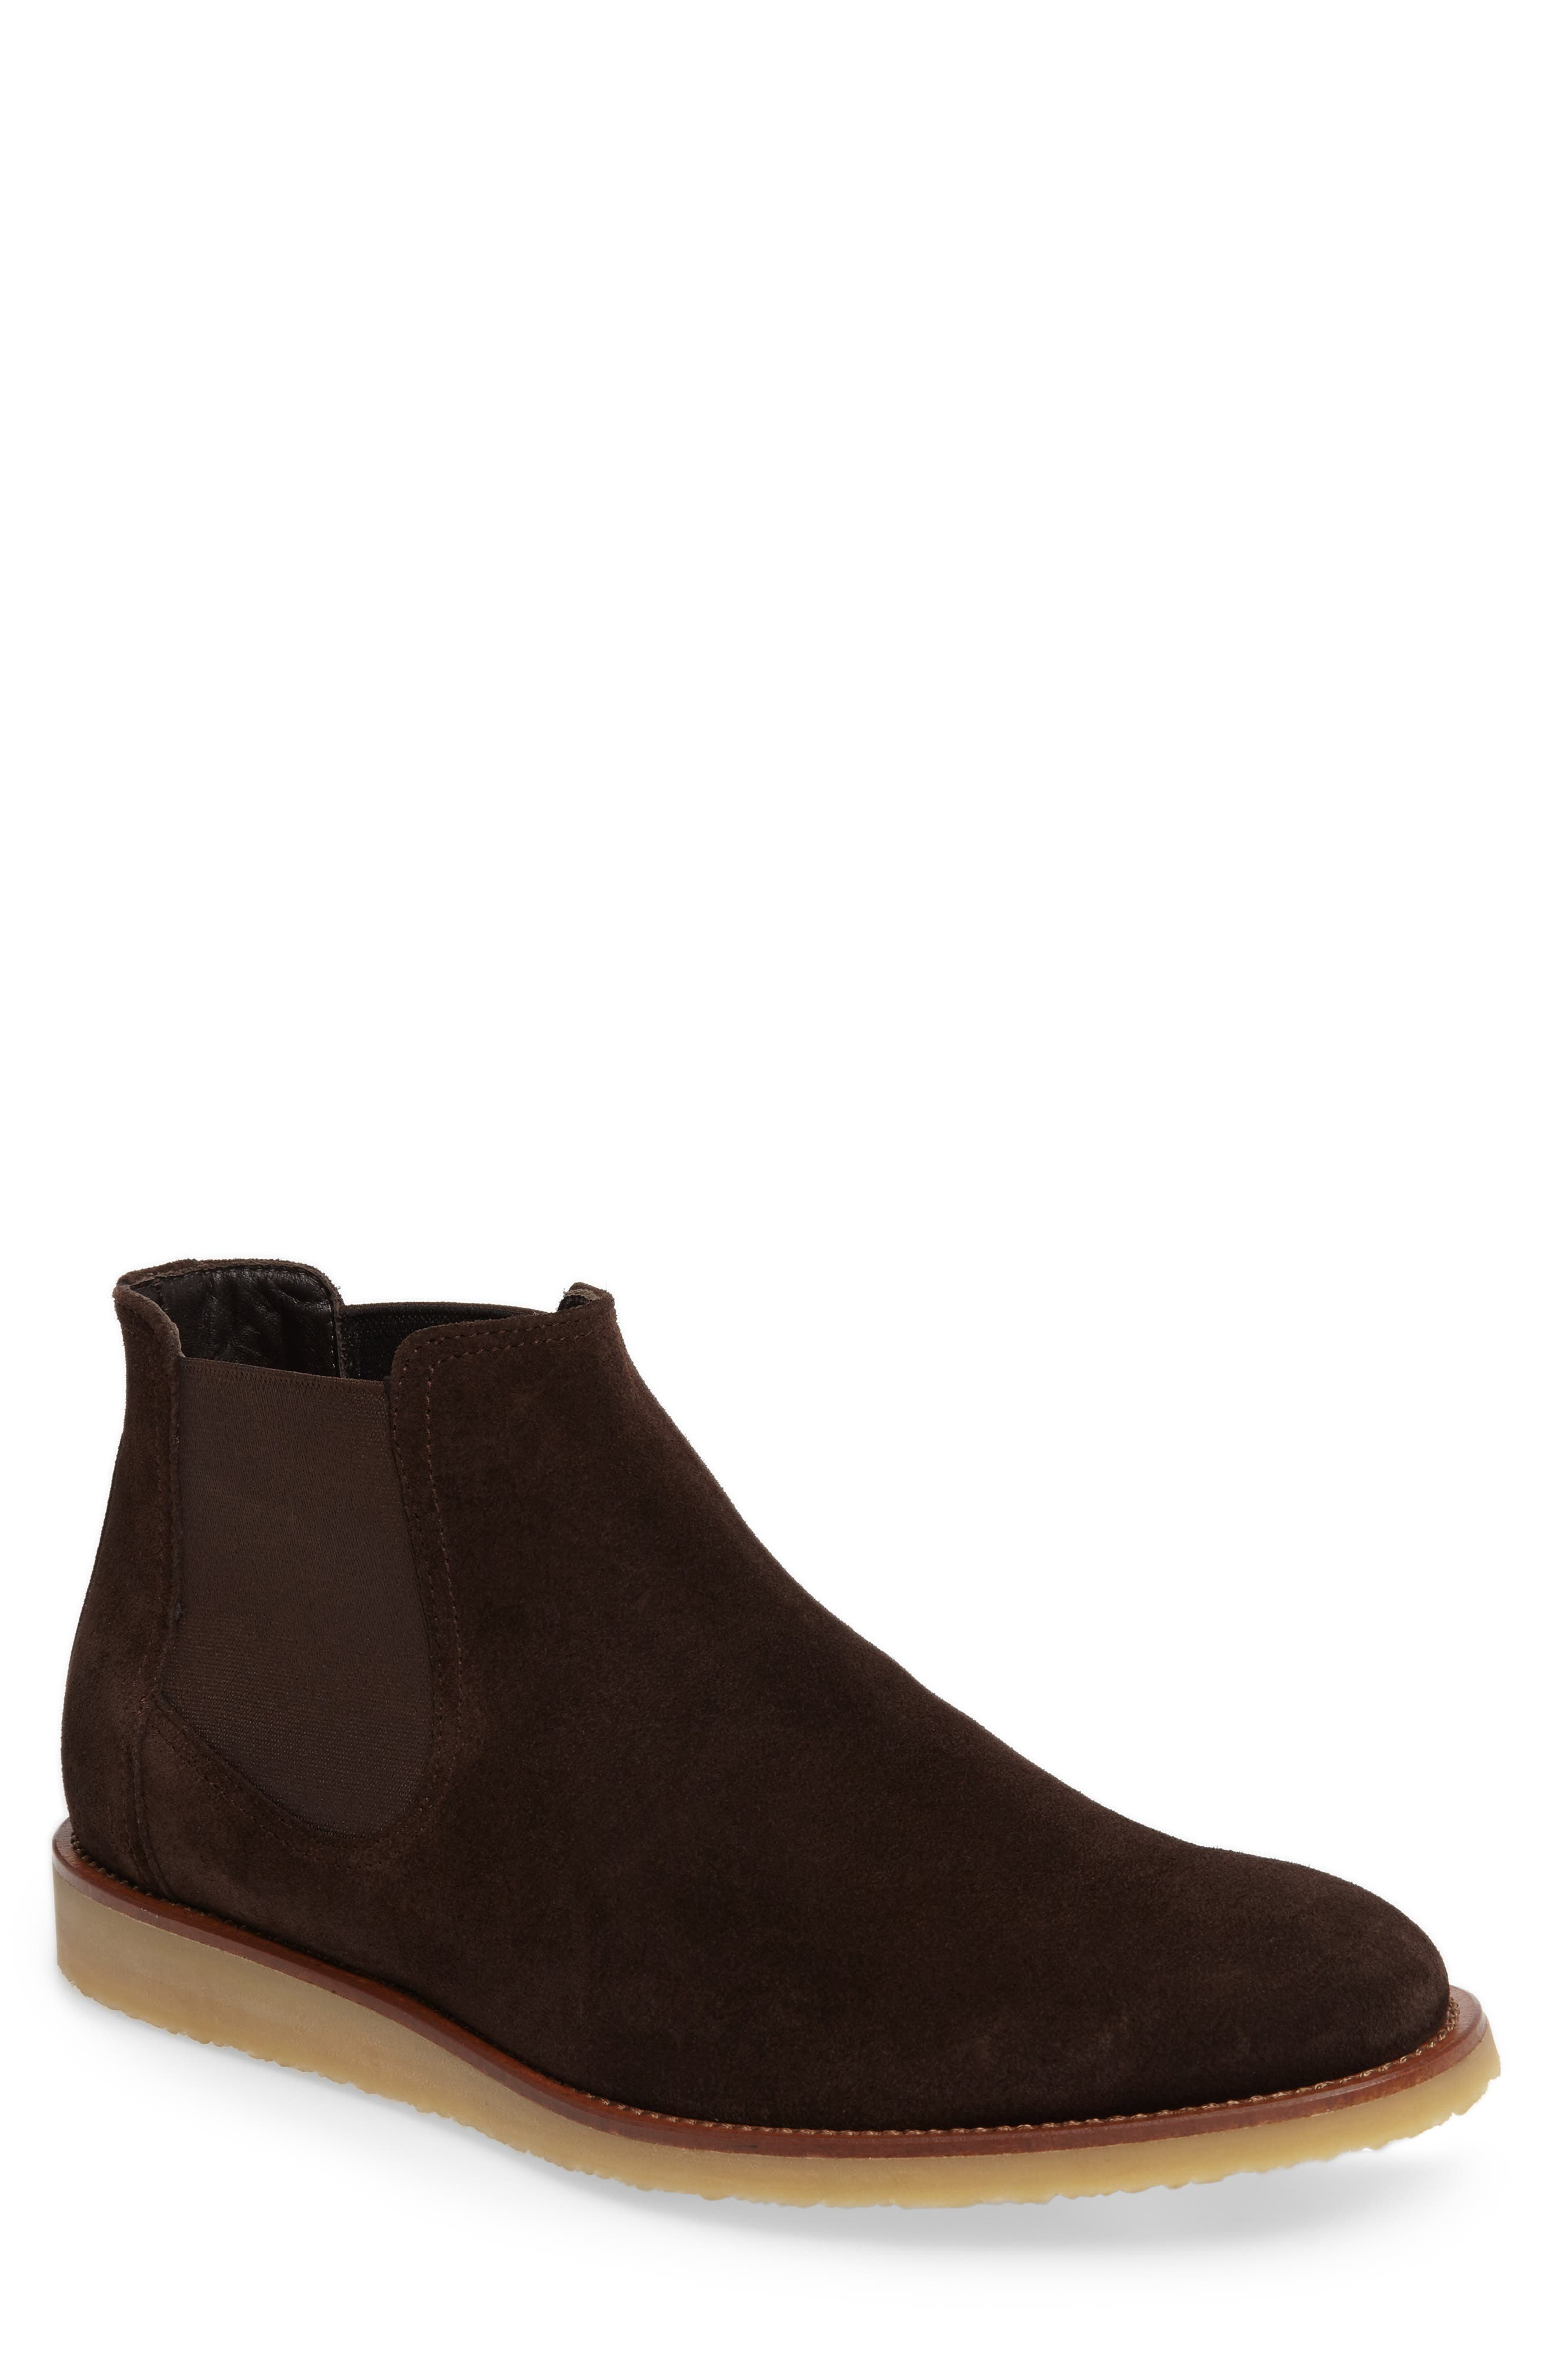 March Chelsea Boot,                             Main thumbnail 2, color,